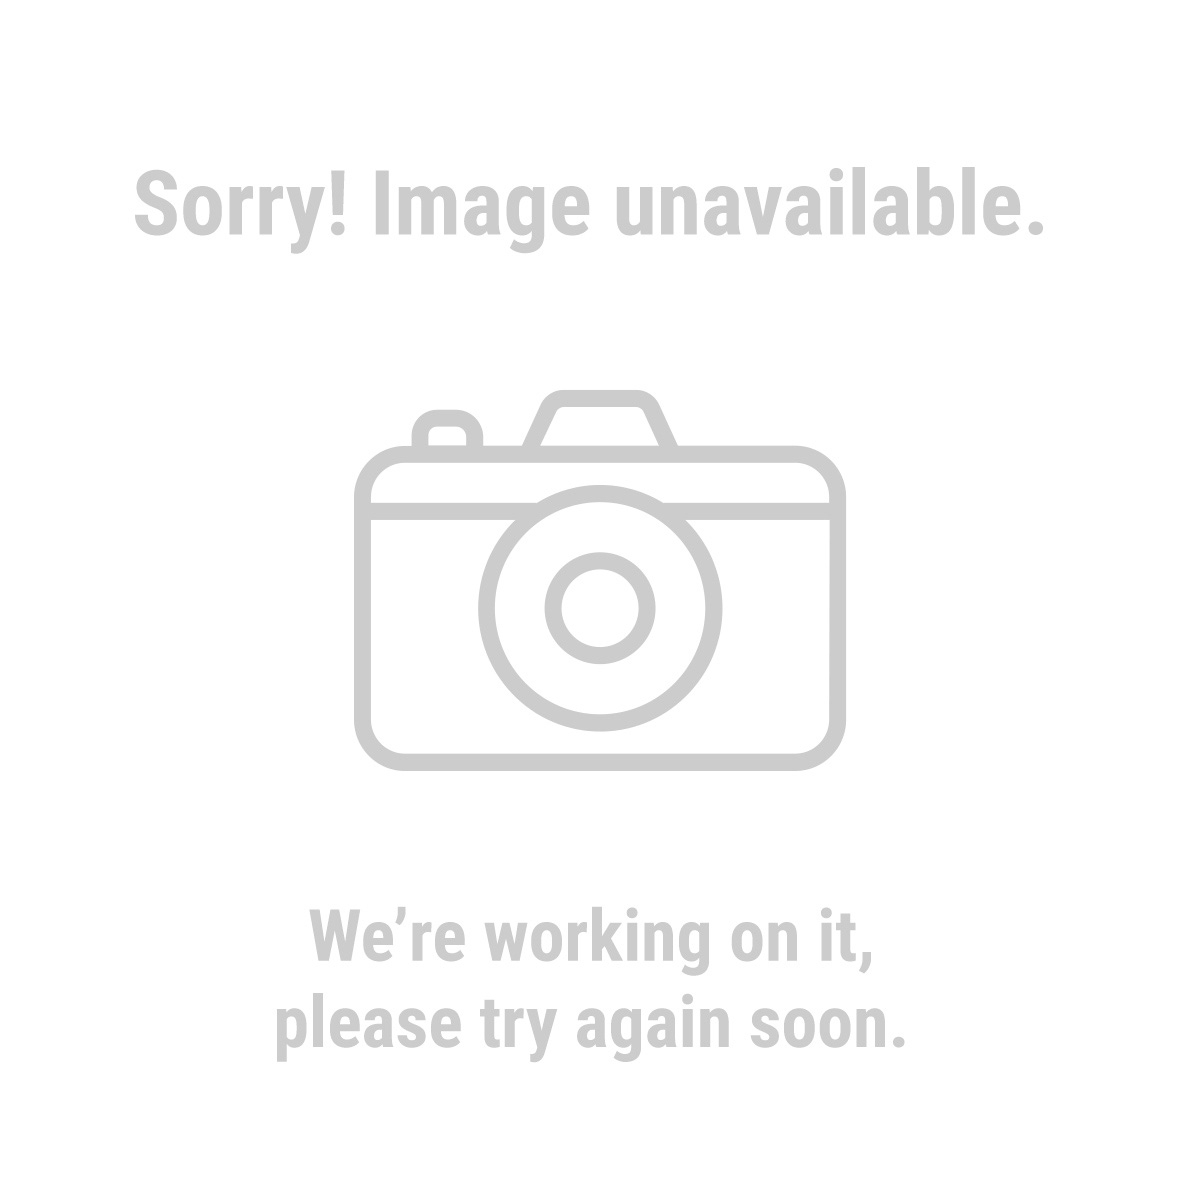 Rust-Oleum 67942 Gloss Black Rust-Oleum Acrylic Enamel Spray Paint